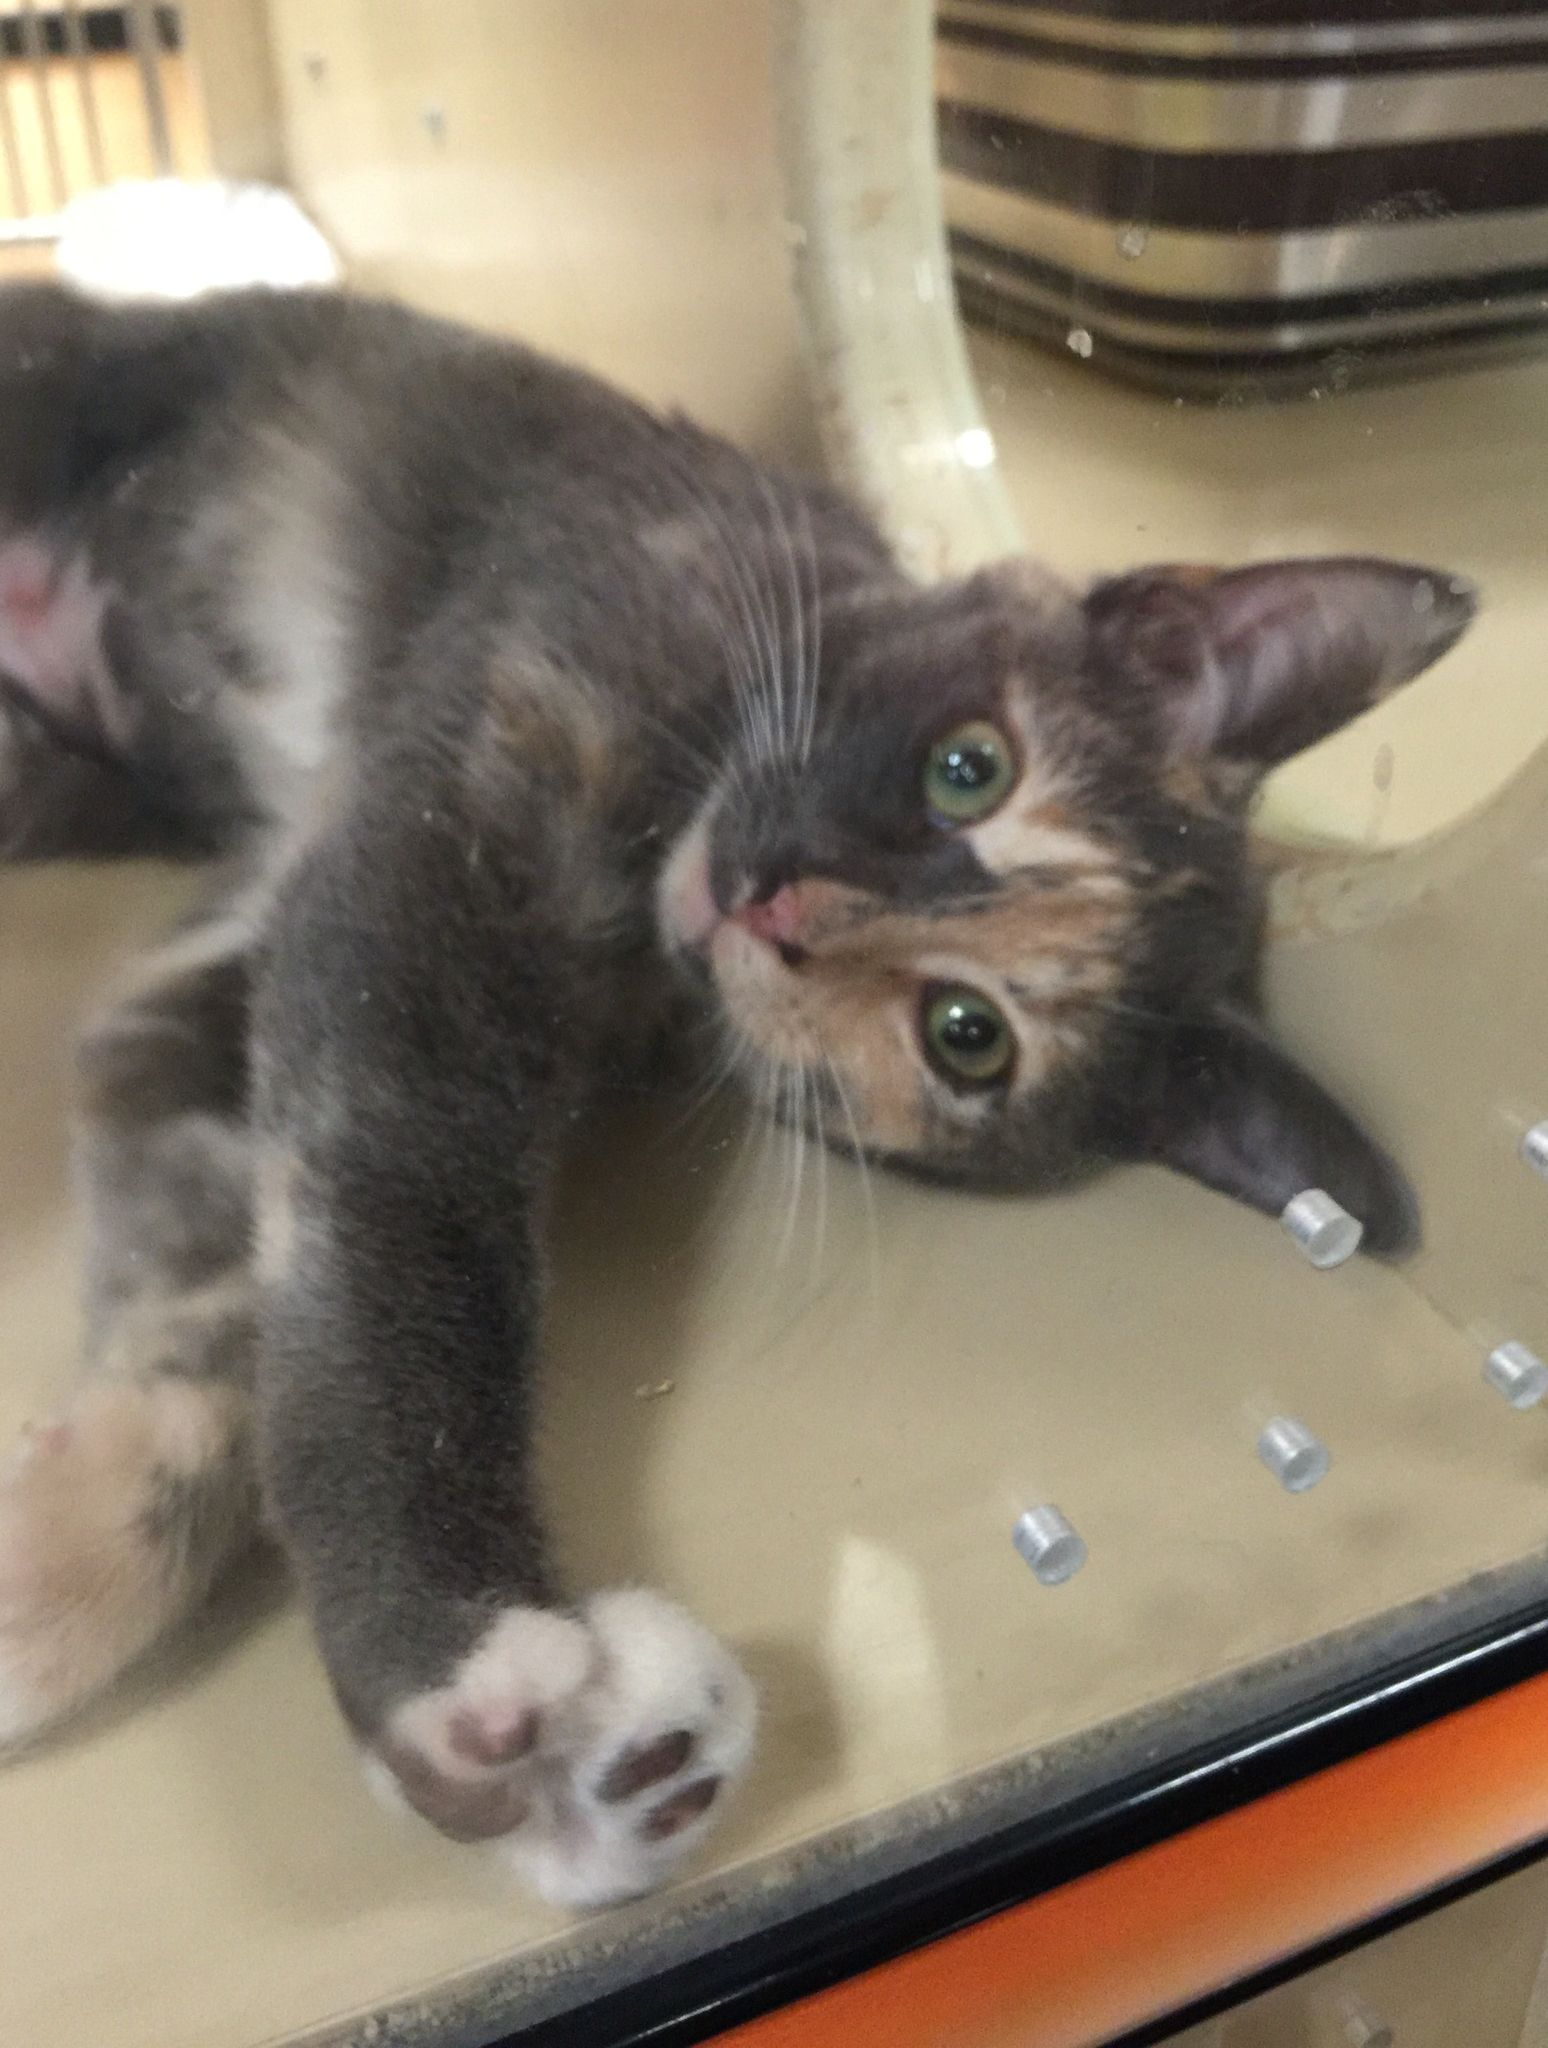 Our Adorable Sophie At Petsmart In Arden Nc She Is Awaiting Her Perfect Home She Has Become So Affectionate And Sweet An Foster Kittens Adoption Day Kittens